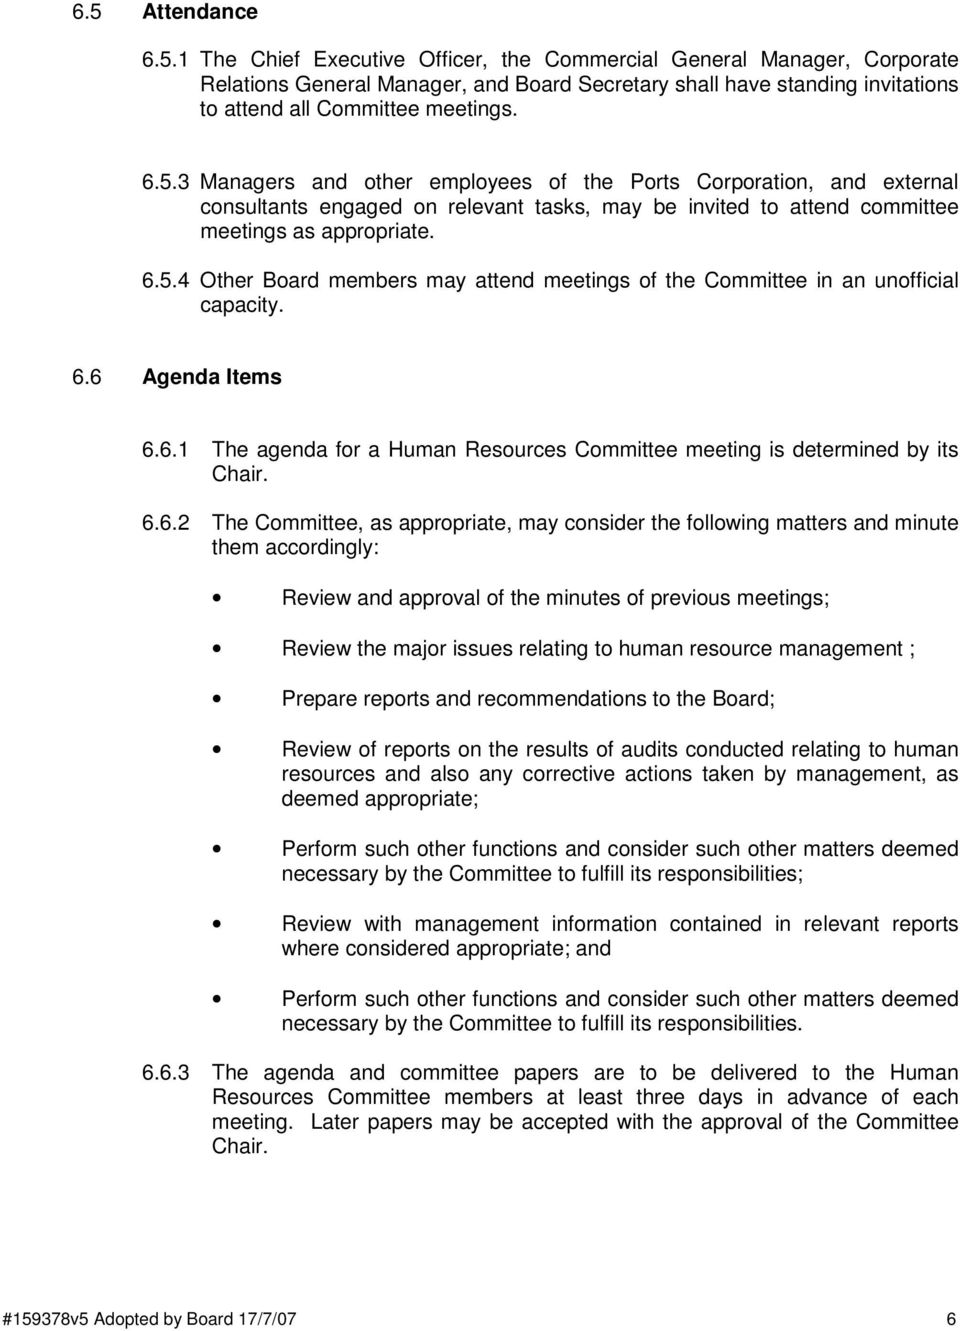 6.6 Agenda Items 6.6.1 The agenda for a Human Resources Committee meeting is determined by its Chair. 6.6.2 The Committee, as appropriate, may consider the following matters and minute them